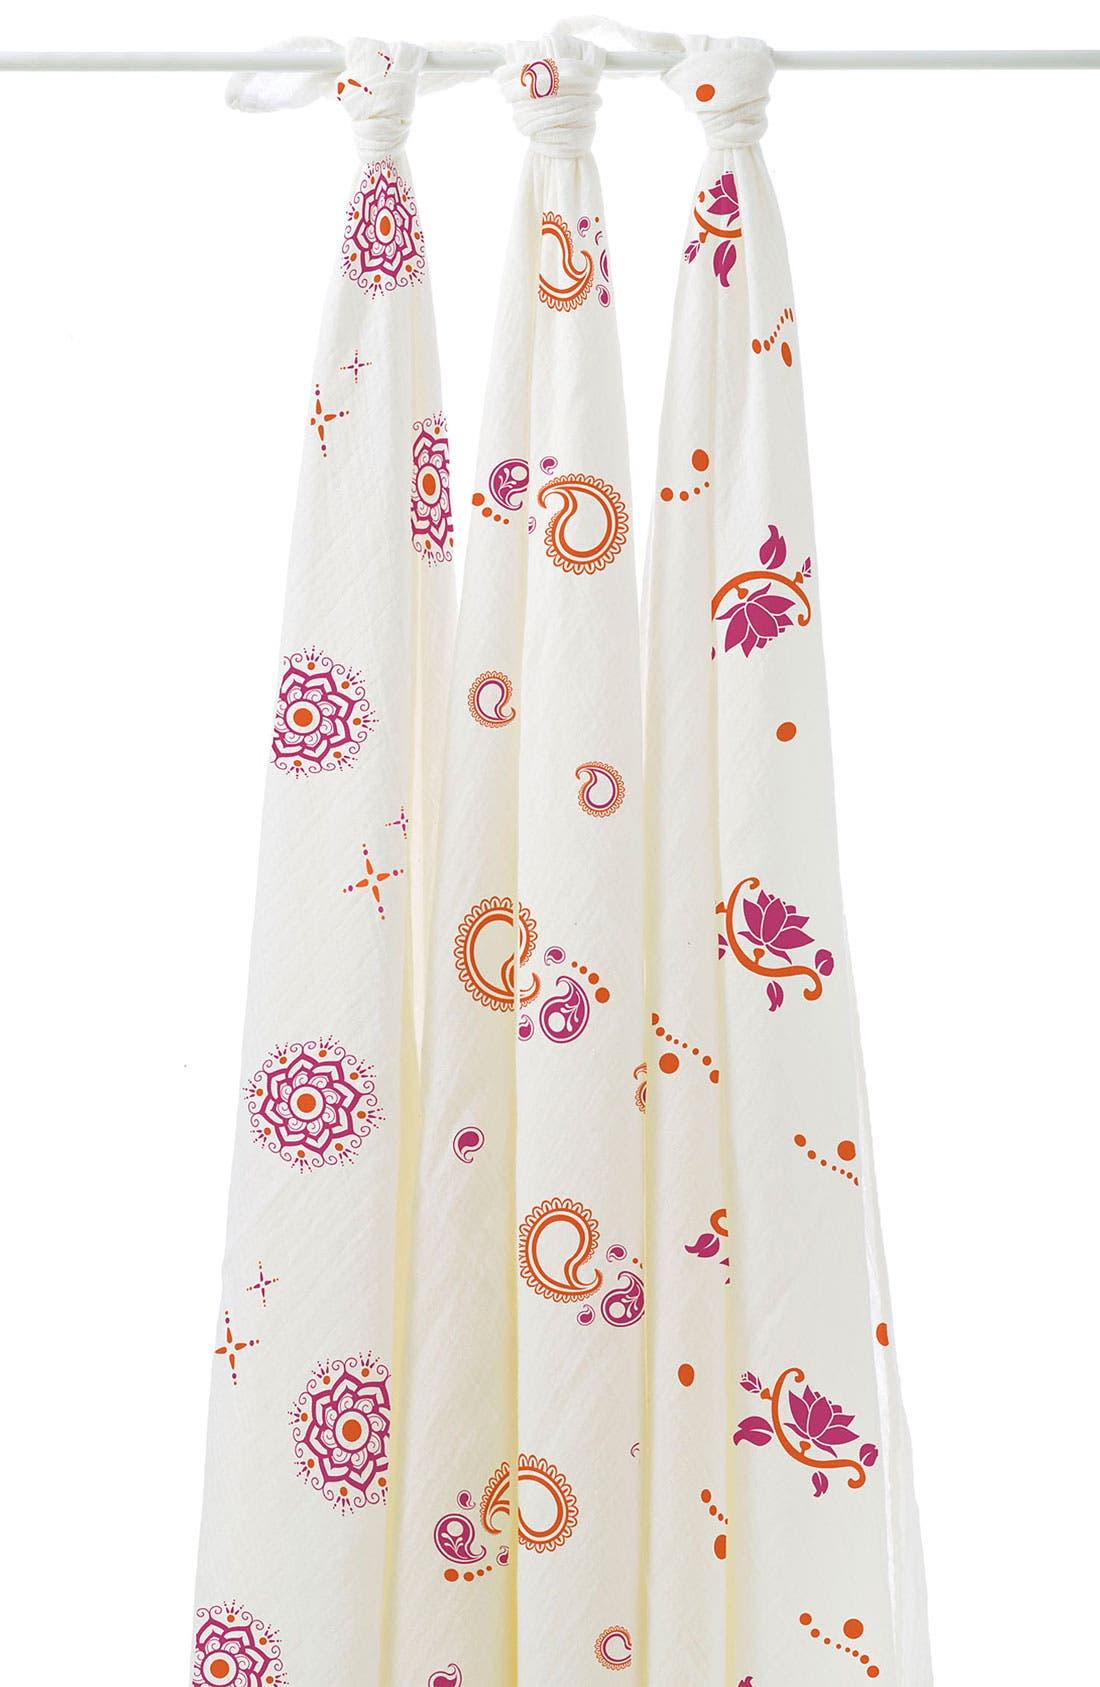 Alternate Image 1 Selected - aden + anais Swaddling Blankets (3-Pack)